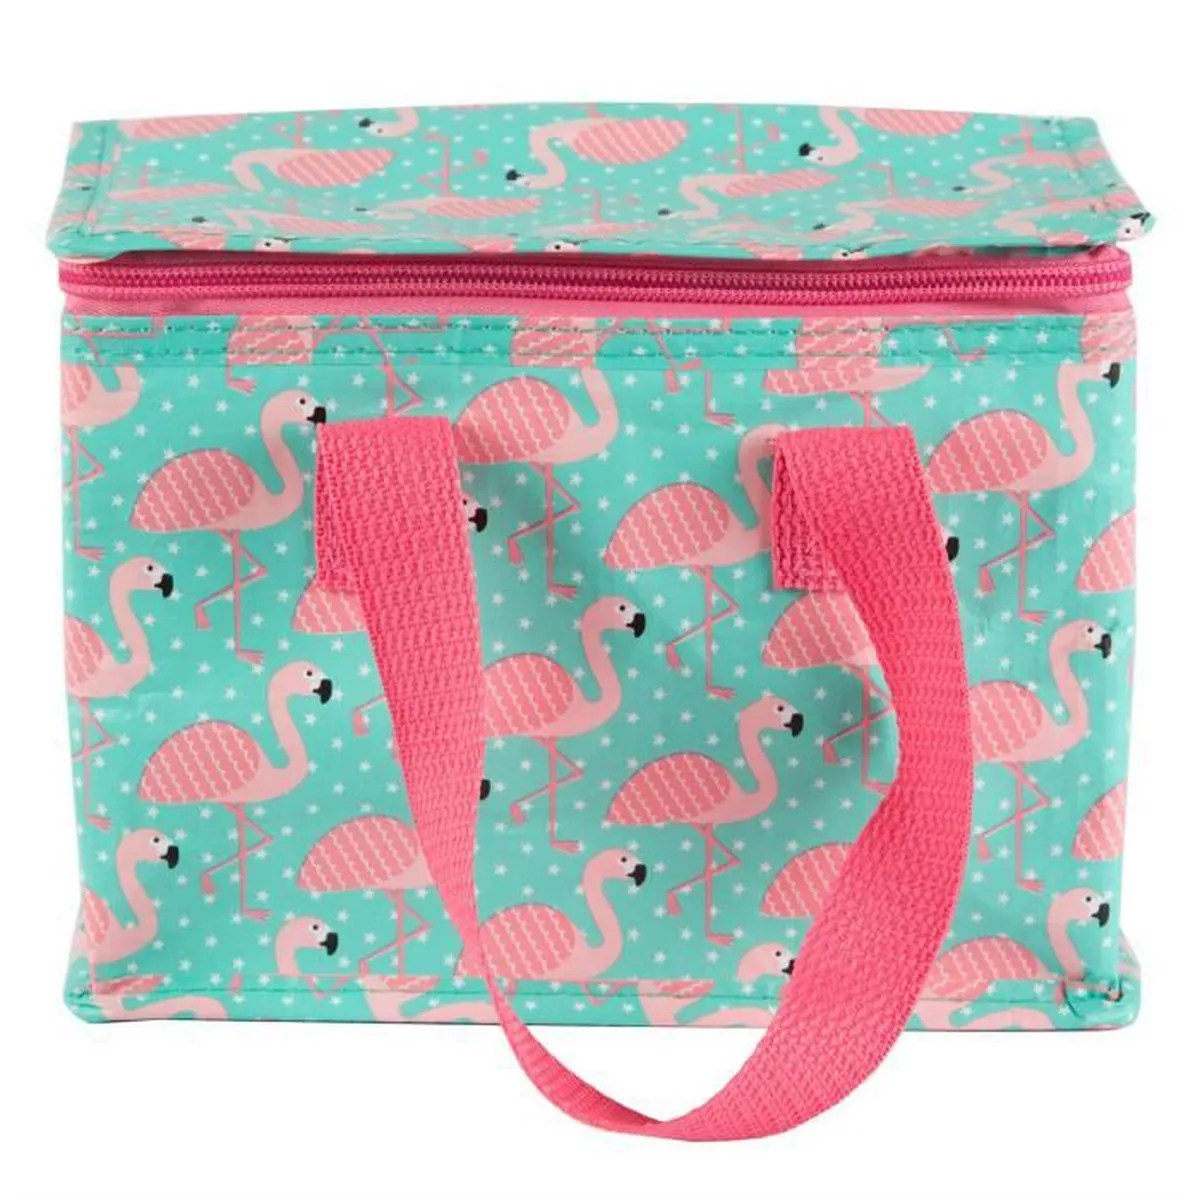 Meuble Tv Flamant Lunch Bag Flamant Rose Bleu Rose Achat Vente Lunch Box Bento